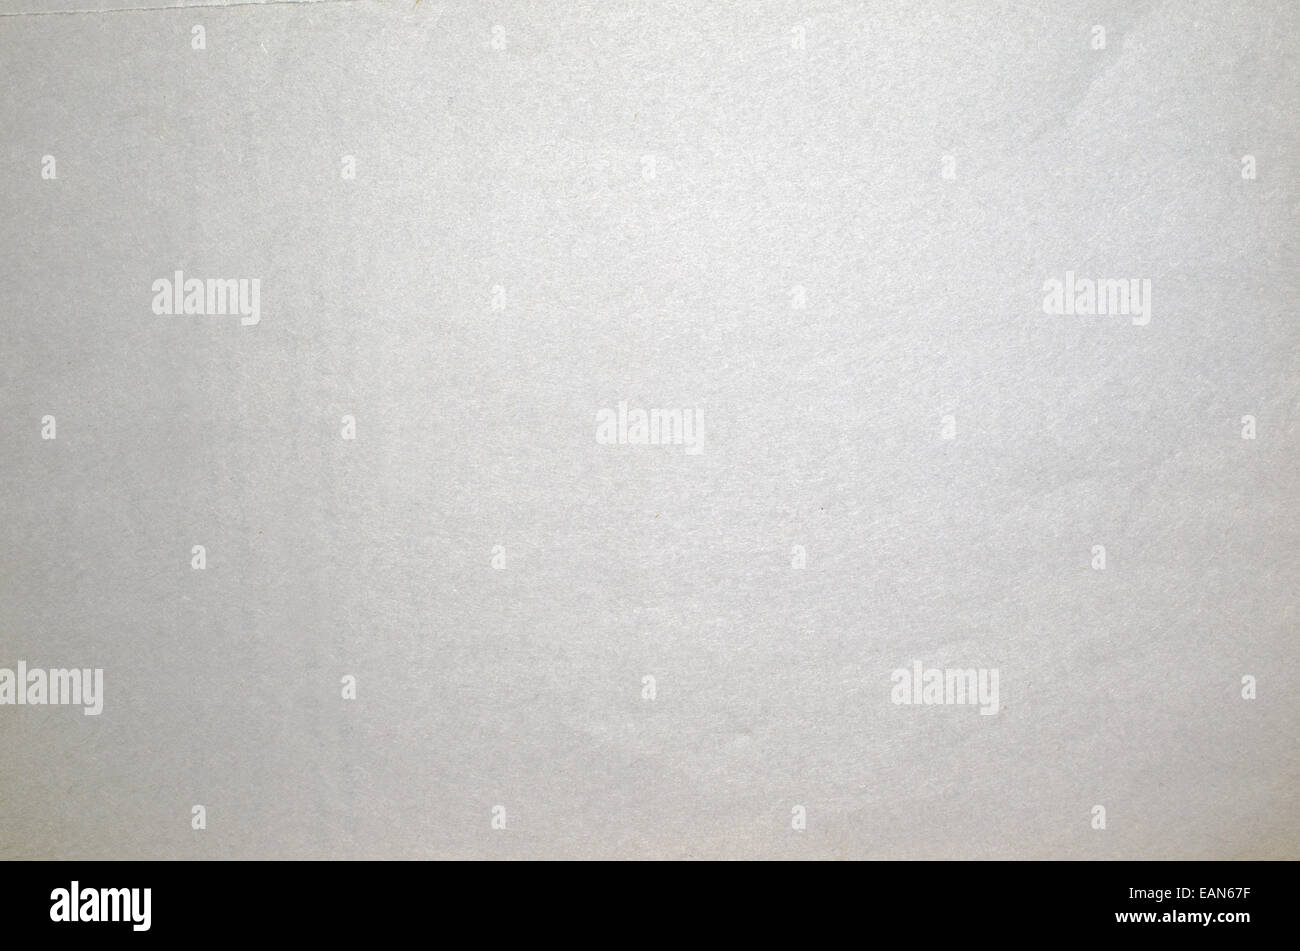 background paper sheet - Stock Image